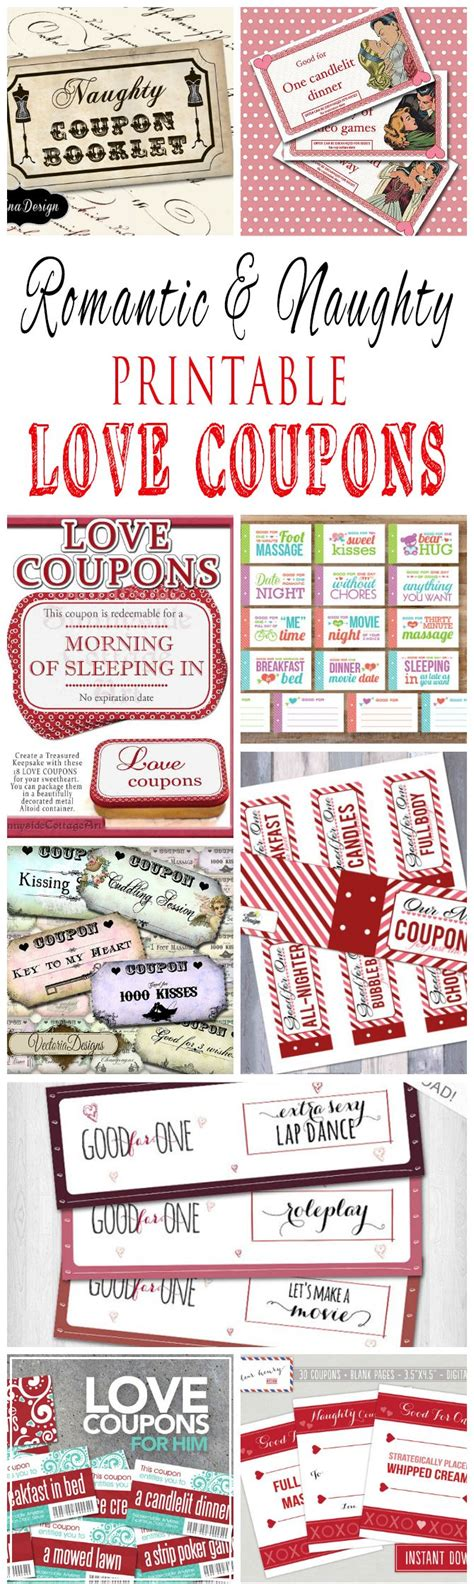 printable love coupons uk romantic and naughty printable love coupons for him